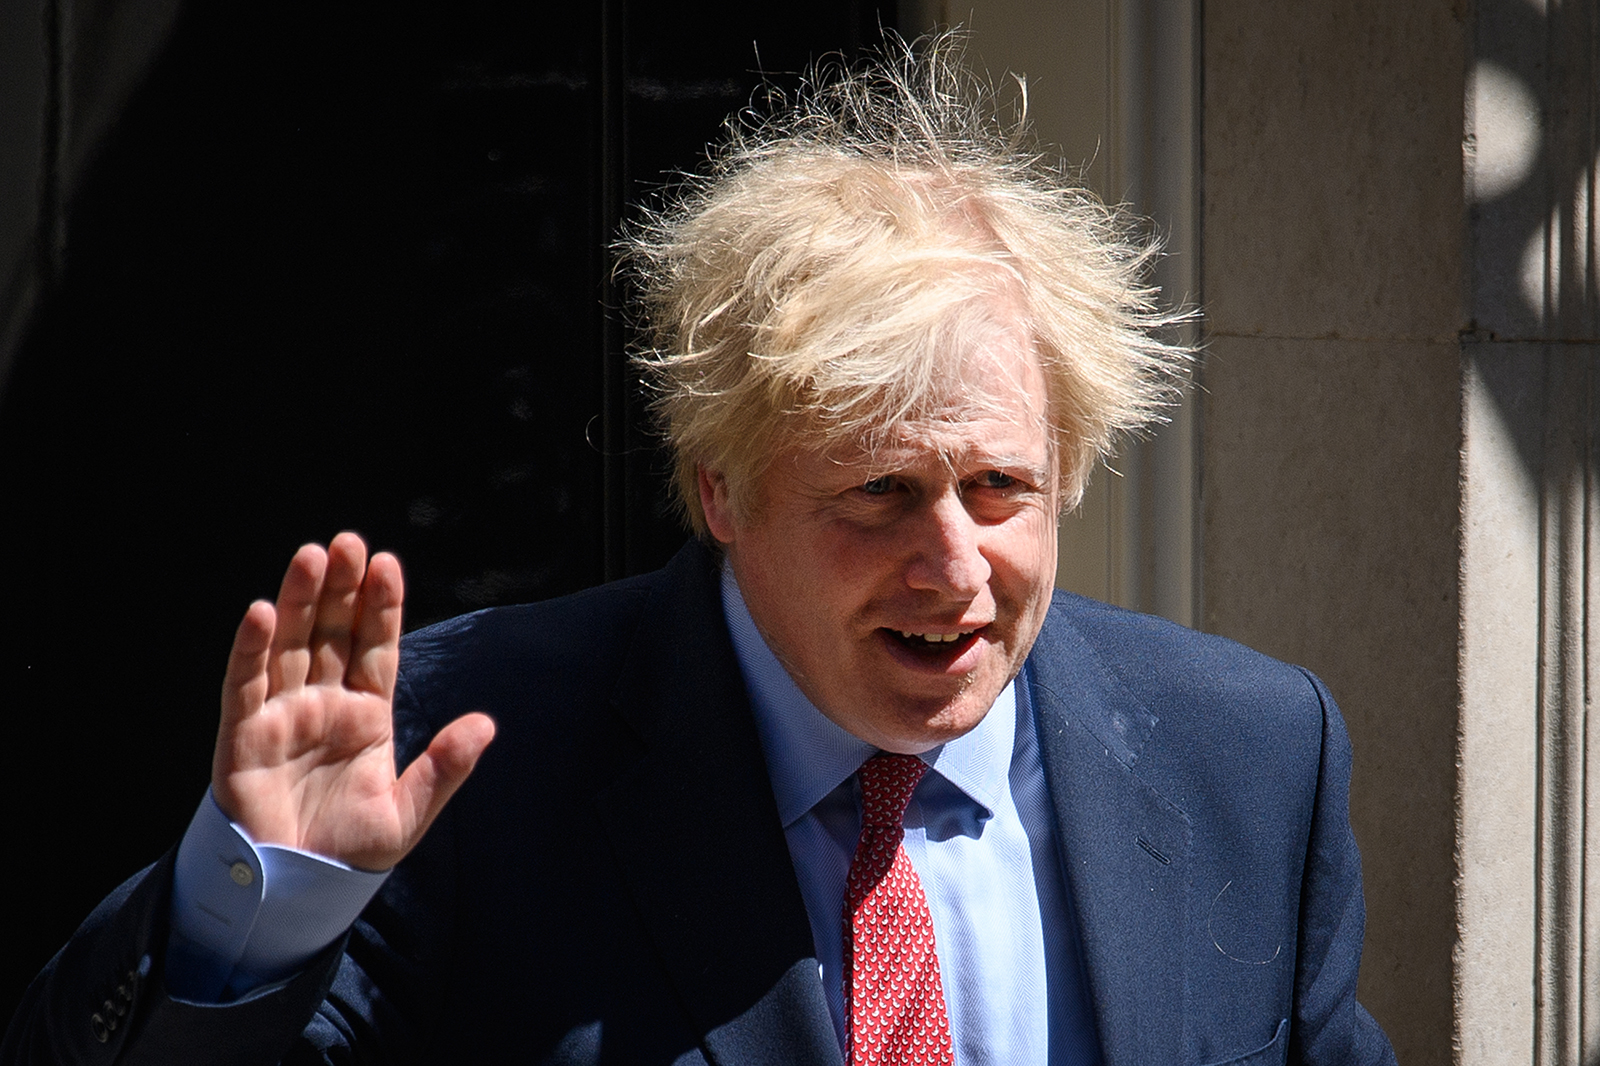 Prime Minister Boris Johnson leaves 10 Downing Street on May 20, in London.